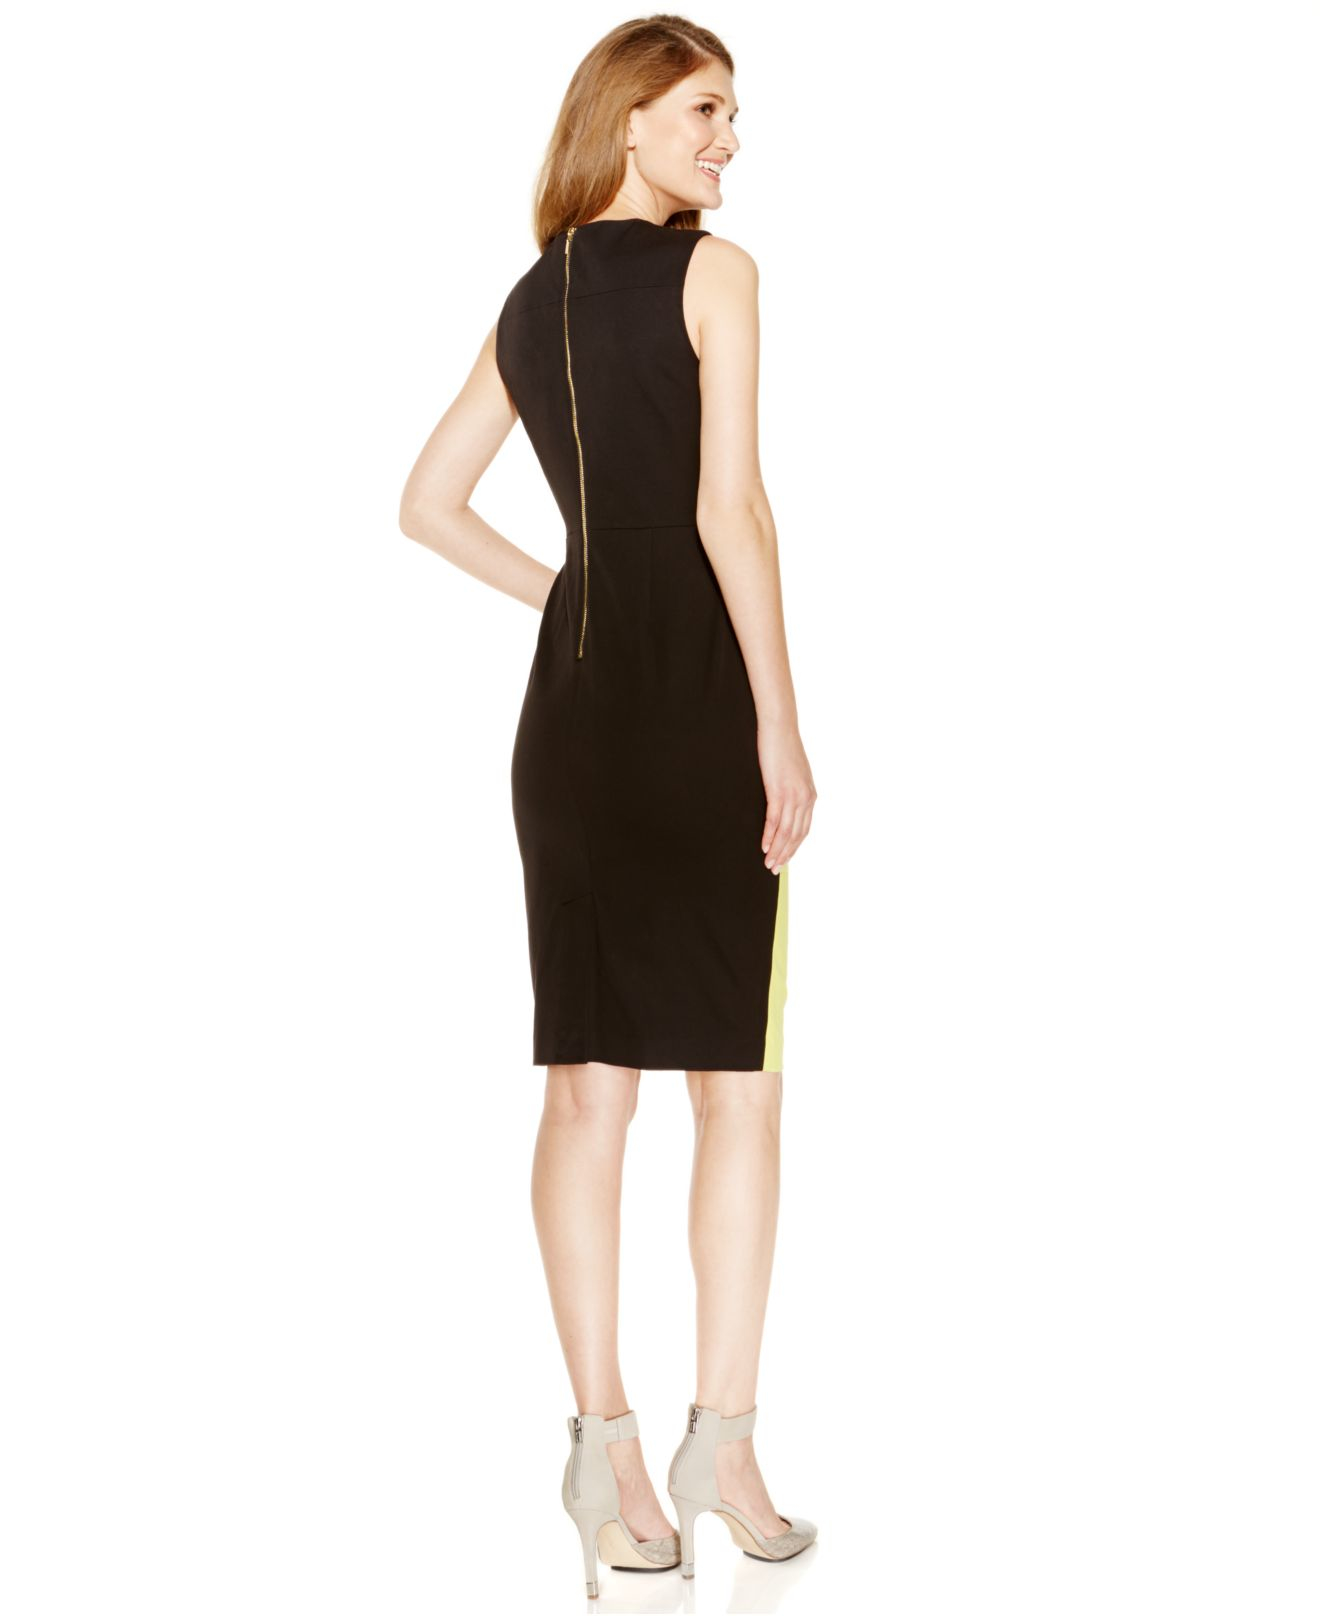 84706040 Calvin Klein Sleeveless Colorblocked Sheath Dress in Black - Lyst